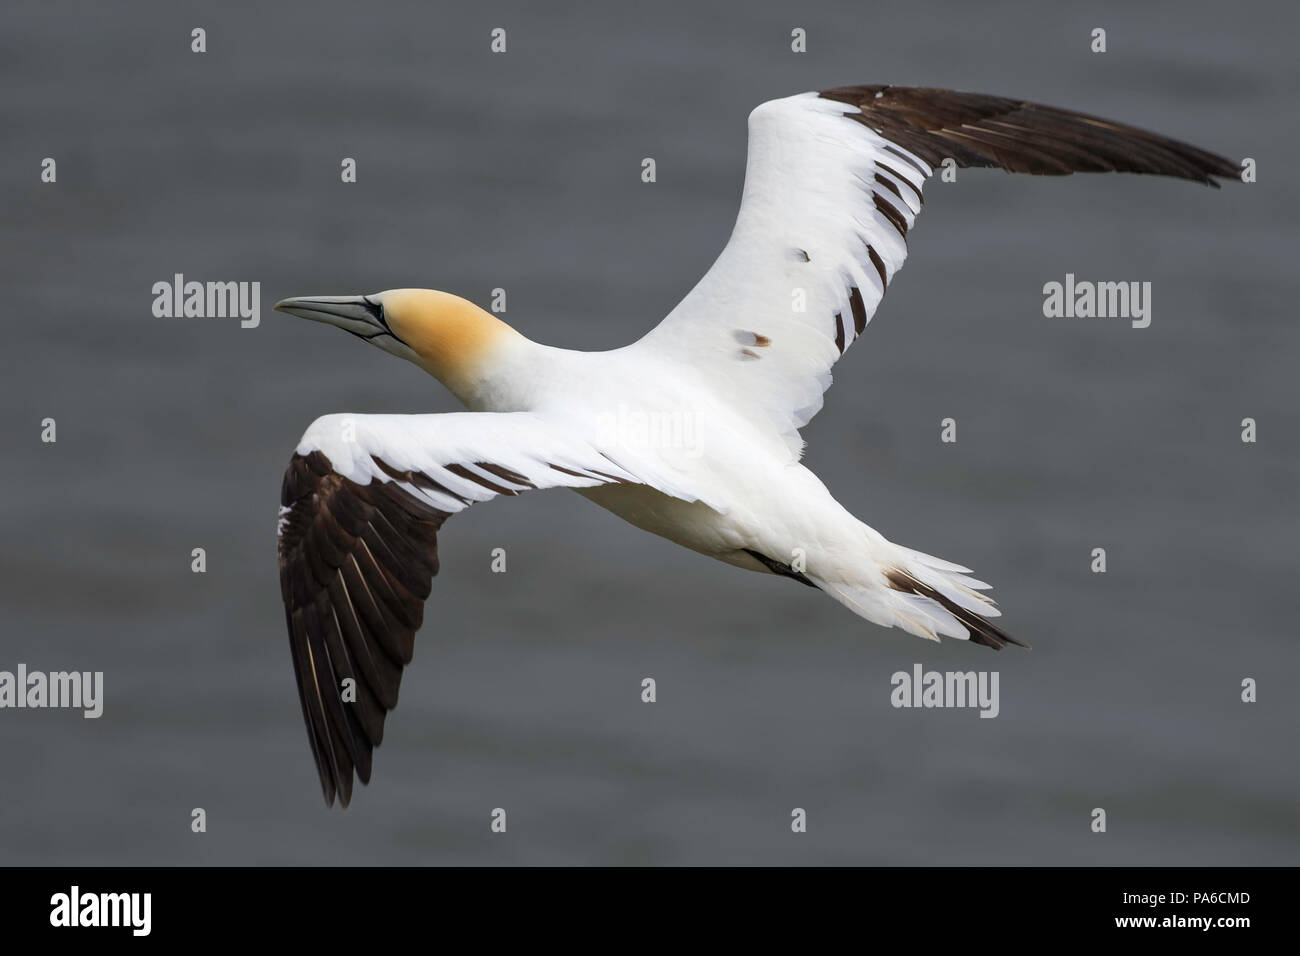 Top view of a fourth year gannet in flight over the sea - Stock Image